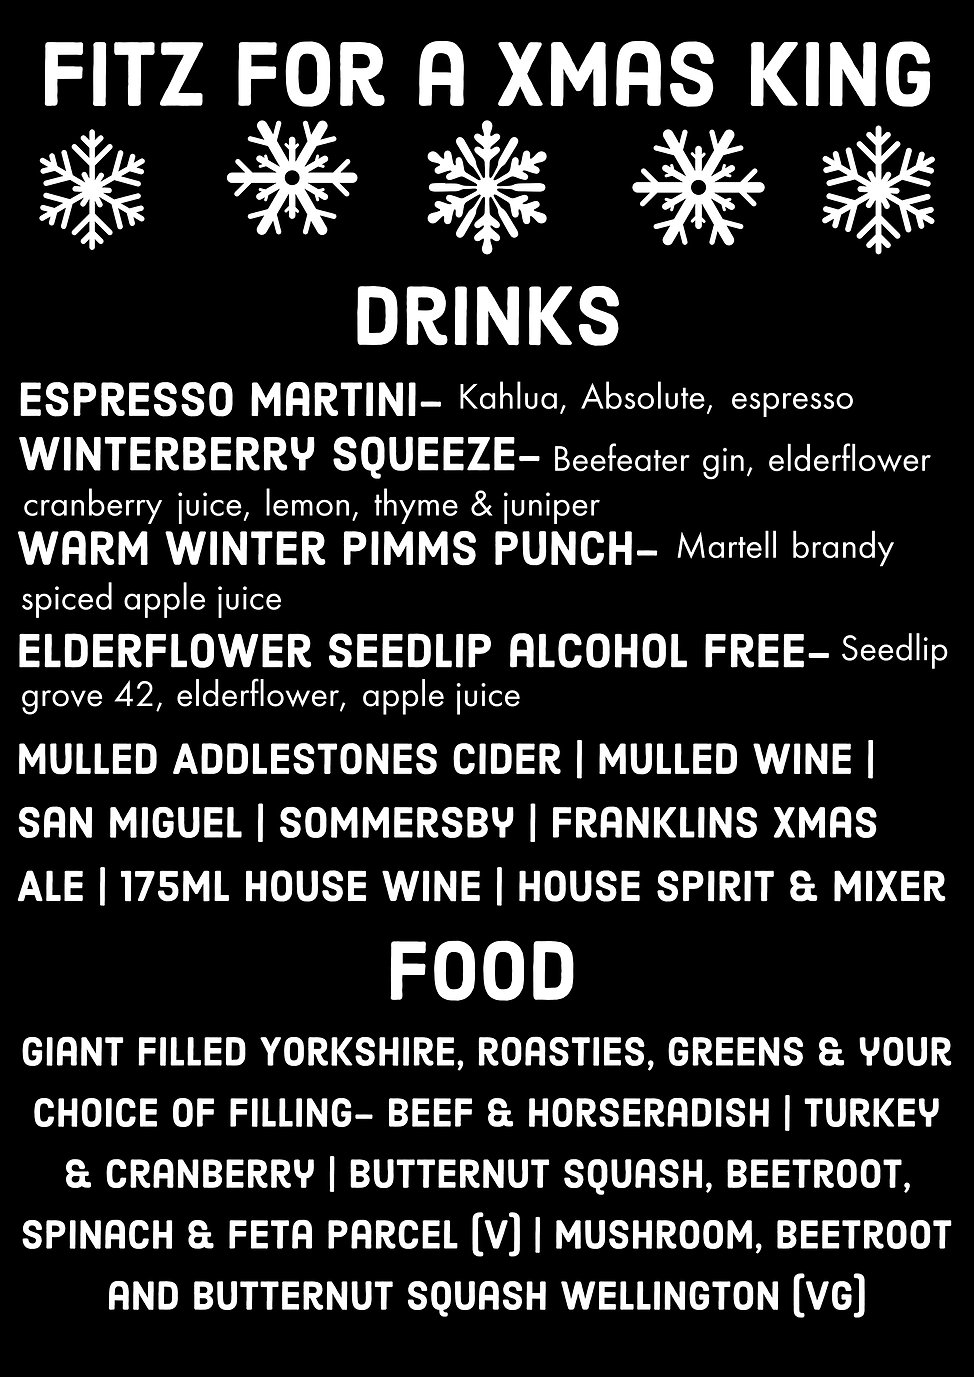 Xmas drinks menu.jpg